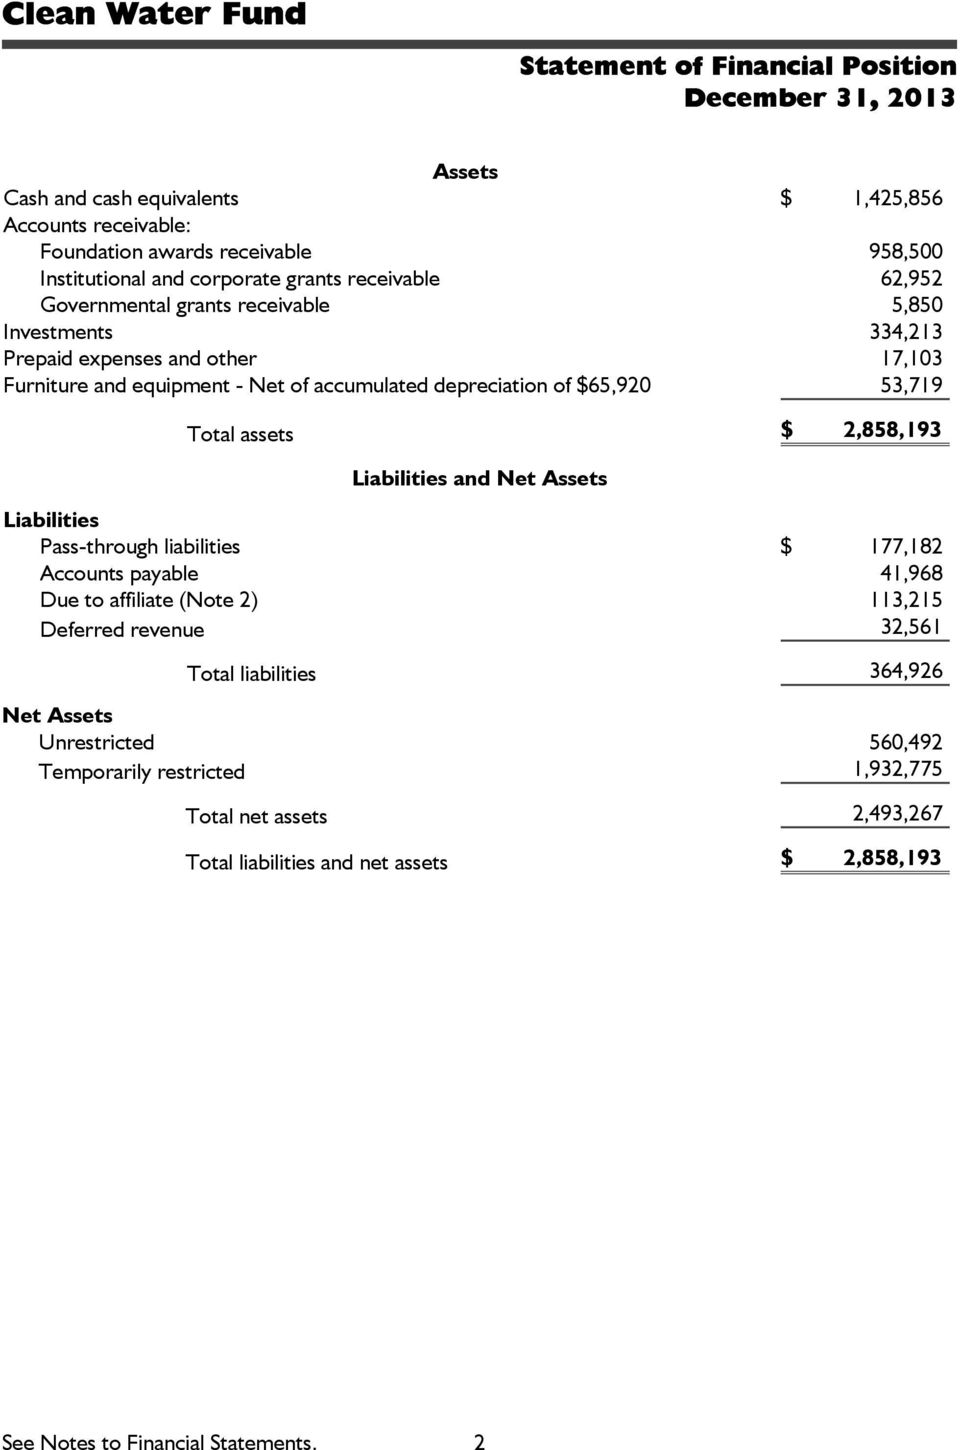 assets $ 2,858,193 Liabilities and Net Assets Liabilities Pass-through liabilities $ 177,182 Accounts payable 41,968 Due to affiliate (Note 2) 113,215 Deferred revenue 32,561 Total